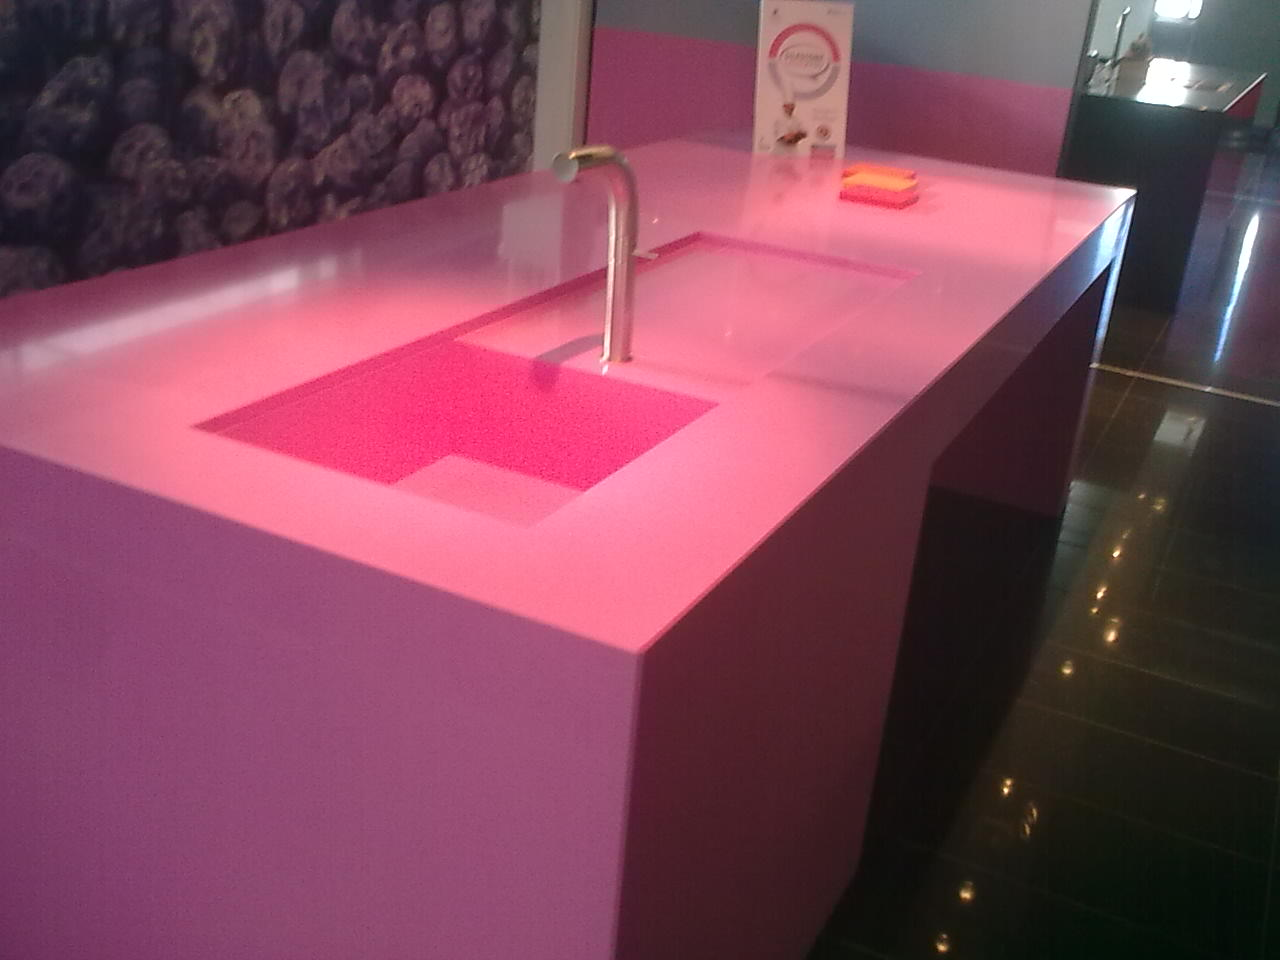 Encimera en Silestone You con fregadero y escurre integrado.